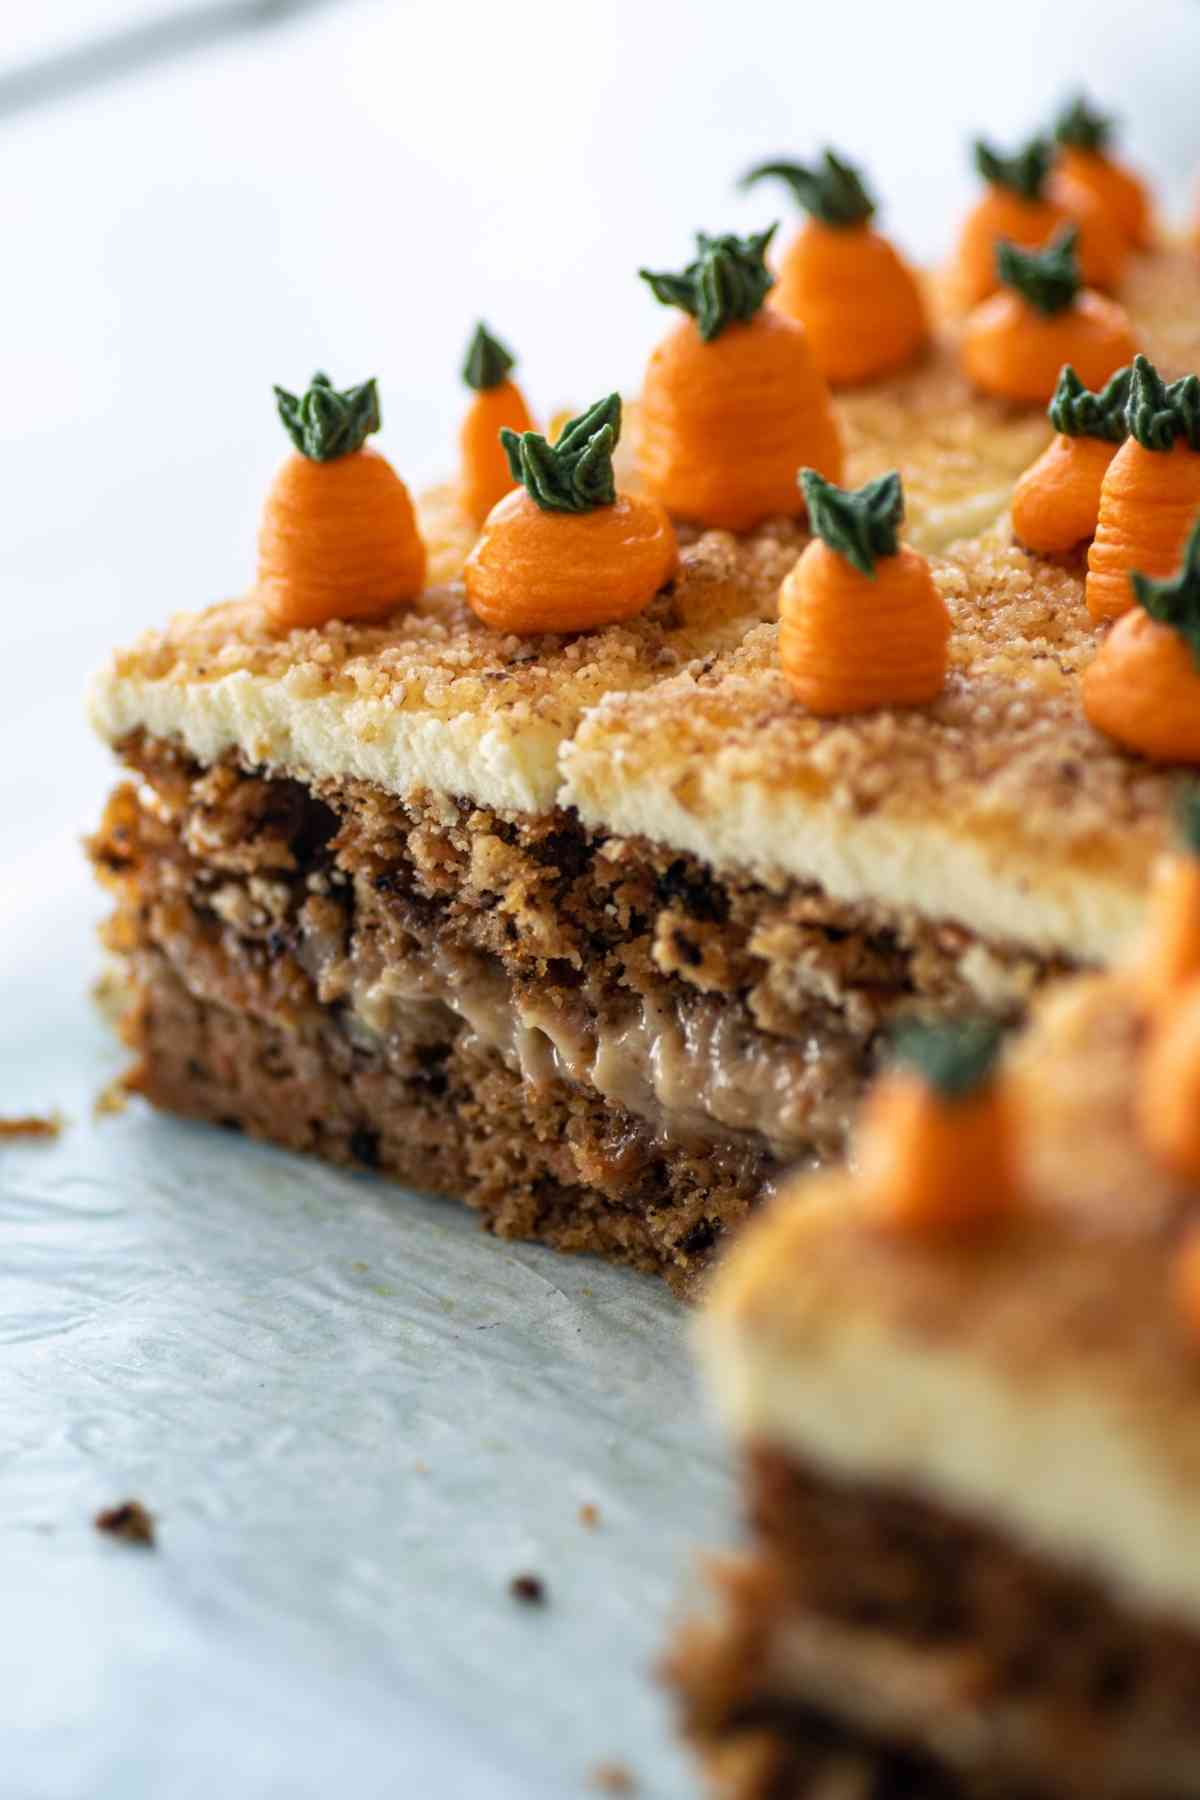 Closeup of carrot cake slices